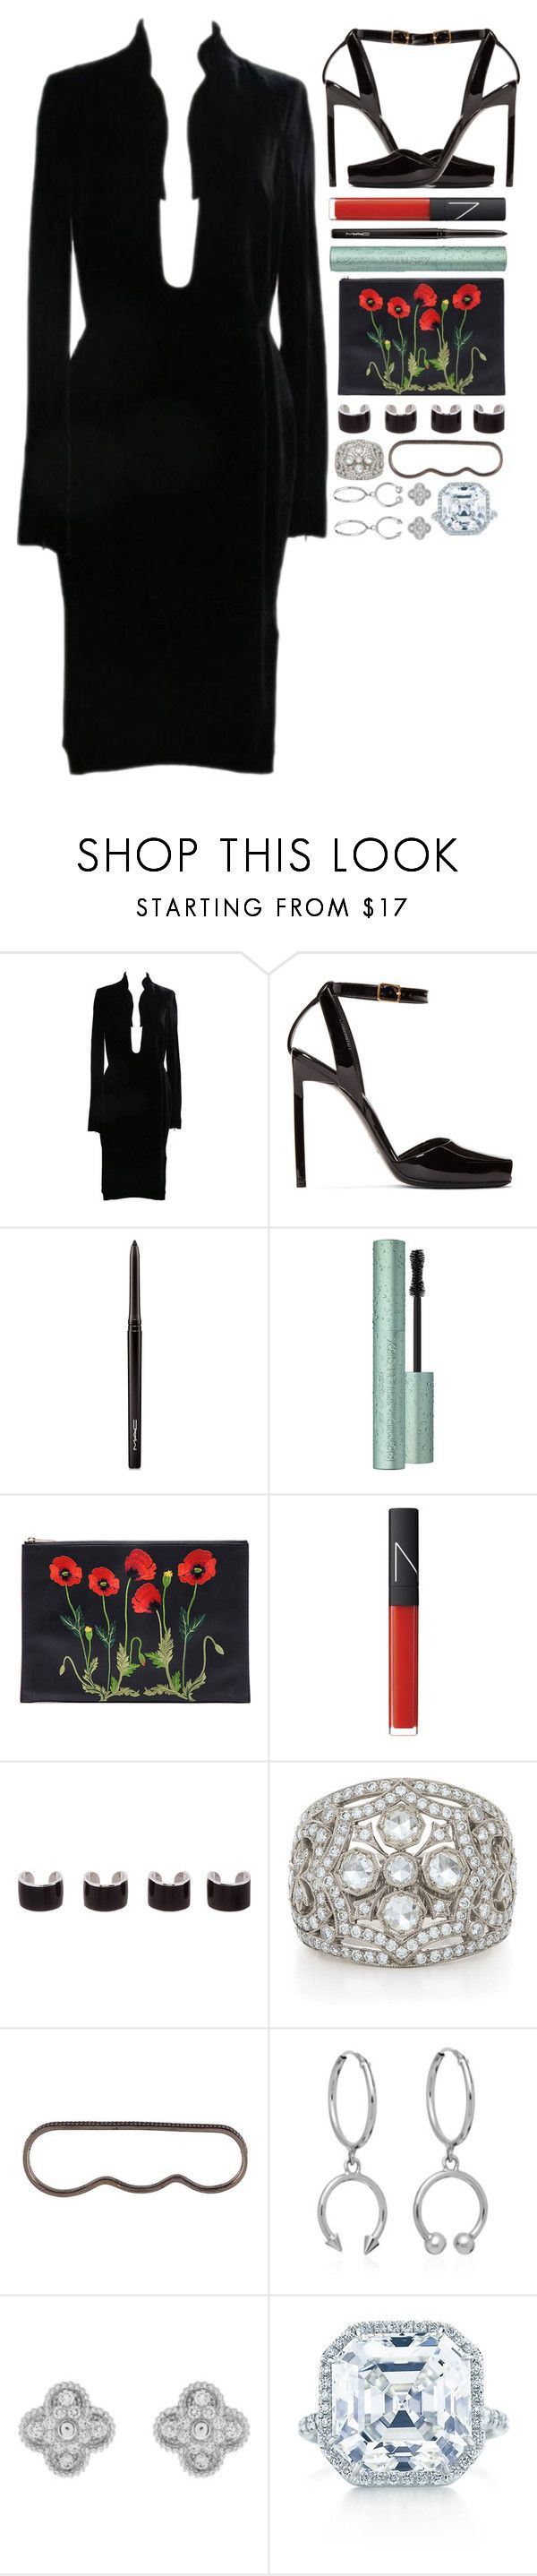 """walking heroine"" by iriskatarina ❤ liked on Polyvore featuring Tom Ford, Yves Saint Laurent, MAC Cosmetics, STELLA McCARTNEY, NARS Cosmetics, Maison Margiela, AS29, Maria Francesca Pepe, Van Cleef & Arpels and Tiffany & Co."